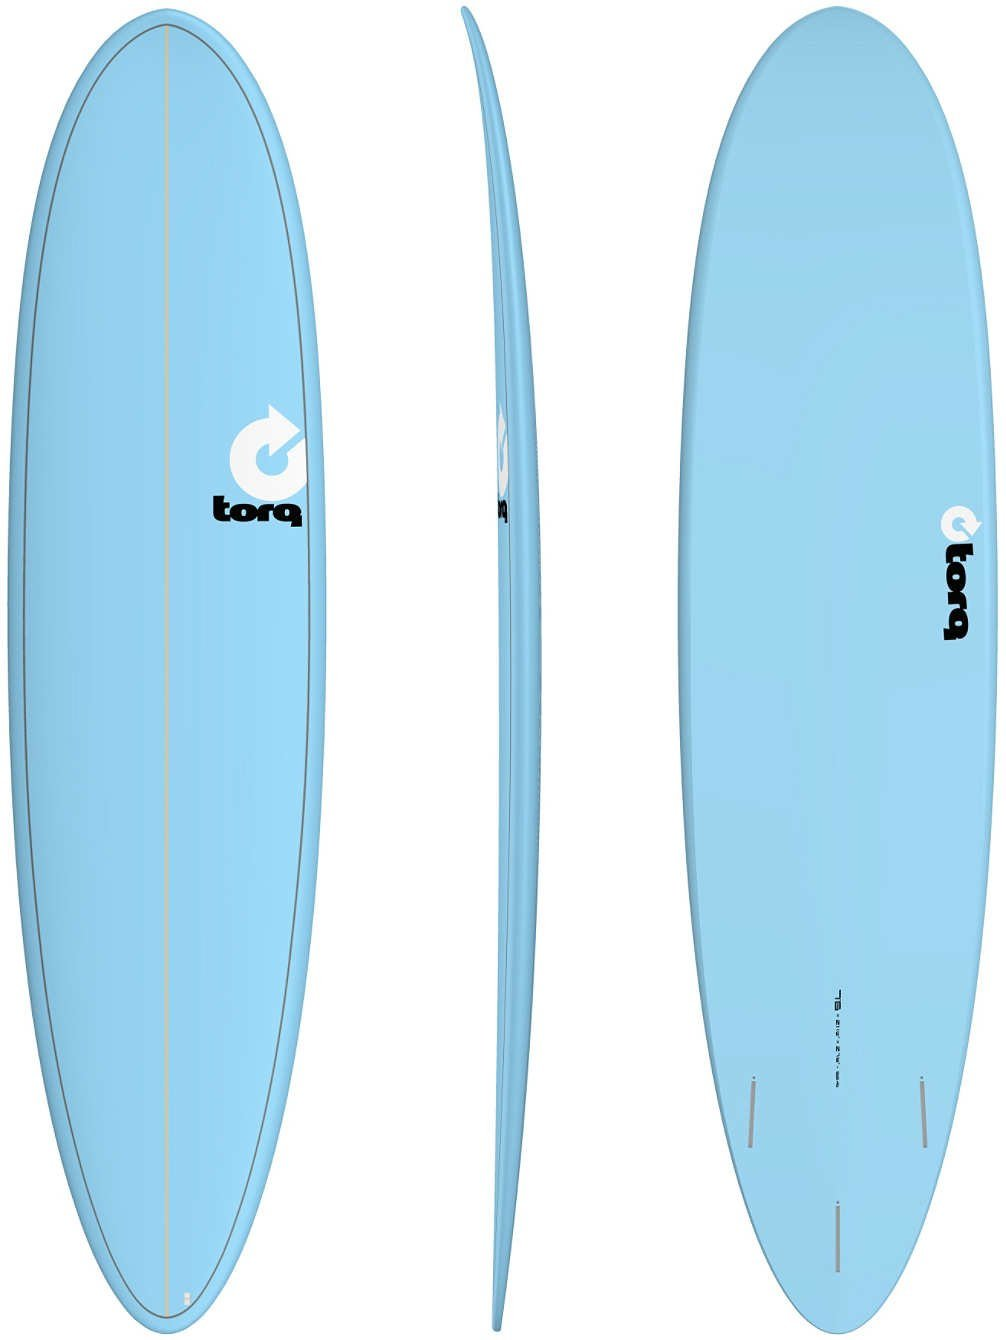 Tabla de Surf Torq epoxy Tet 7.6FUN Board Blue: Amazon.es: Deportes y aire libre